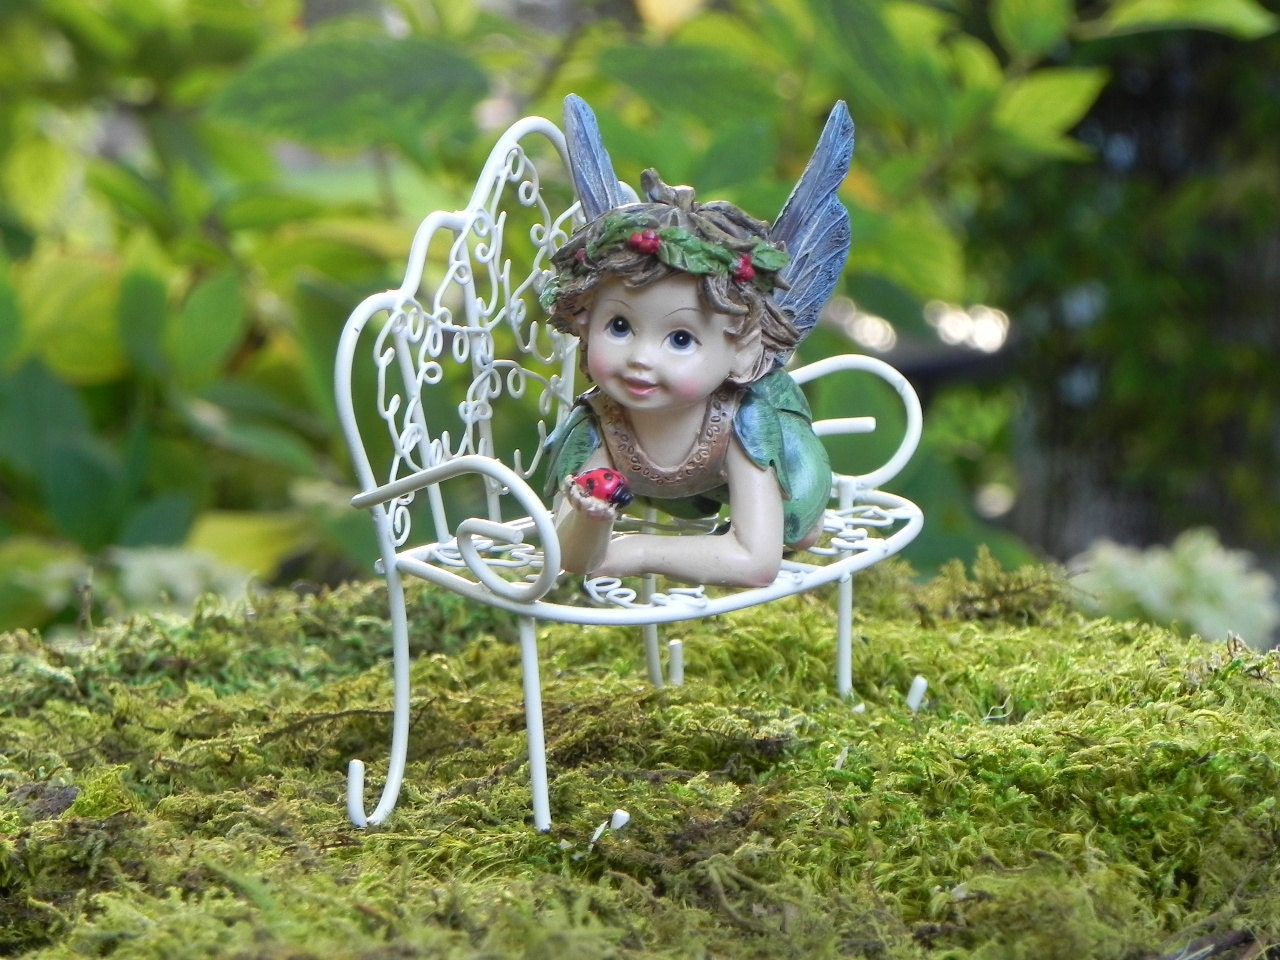 Fairy garden fairy figurine with ladybug miniature bench for Fairy garden figurines